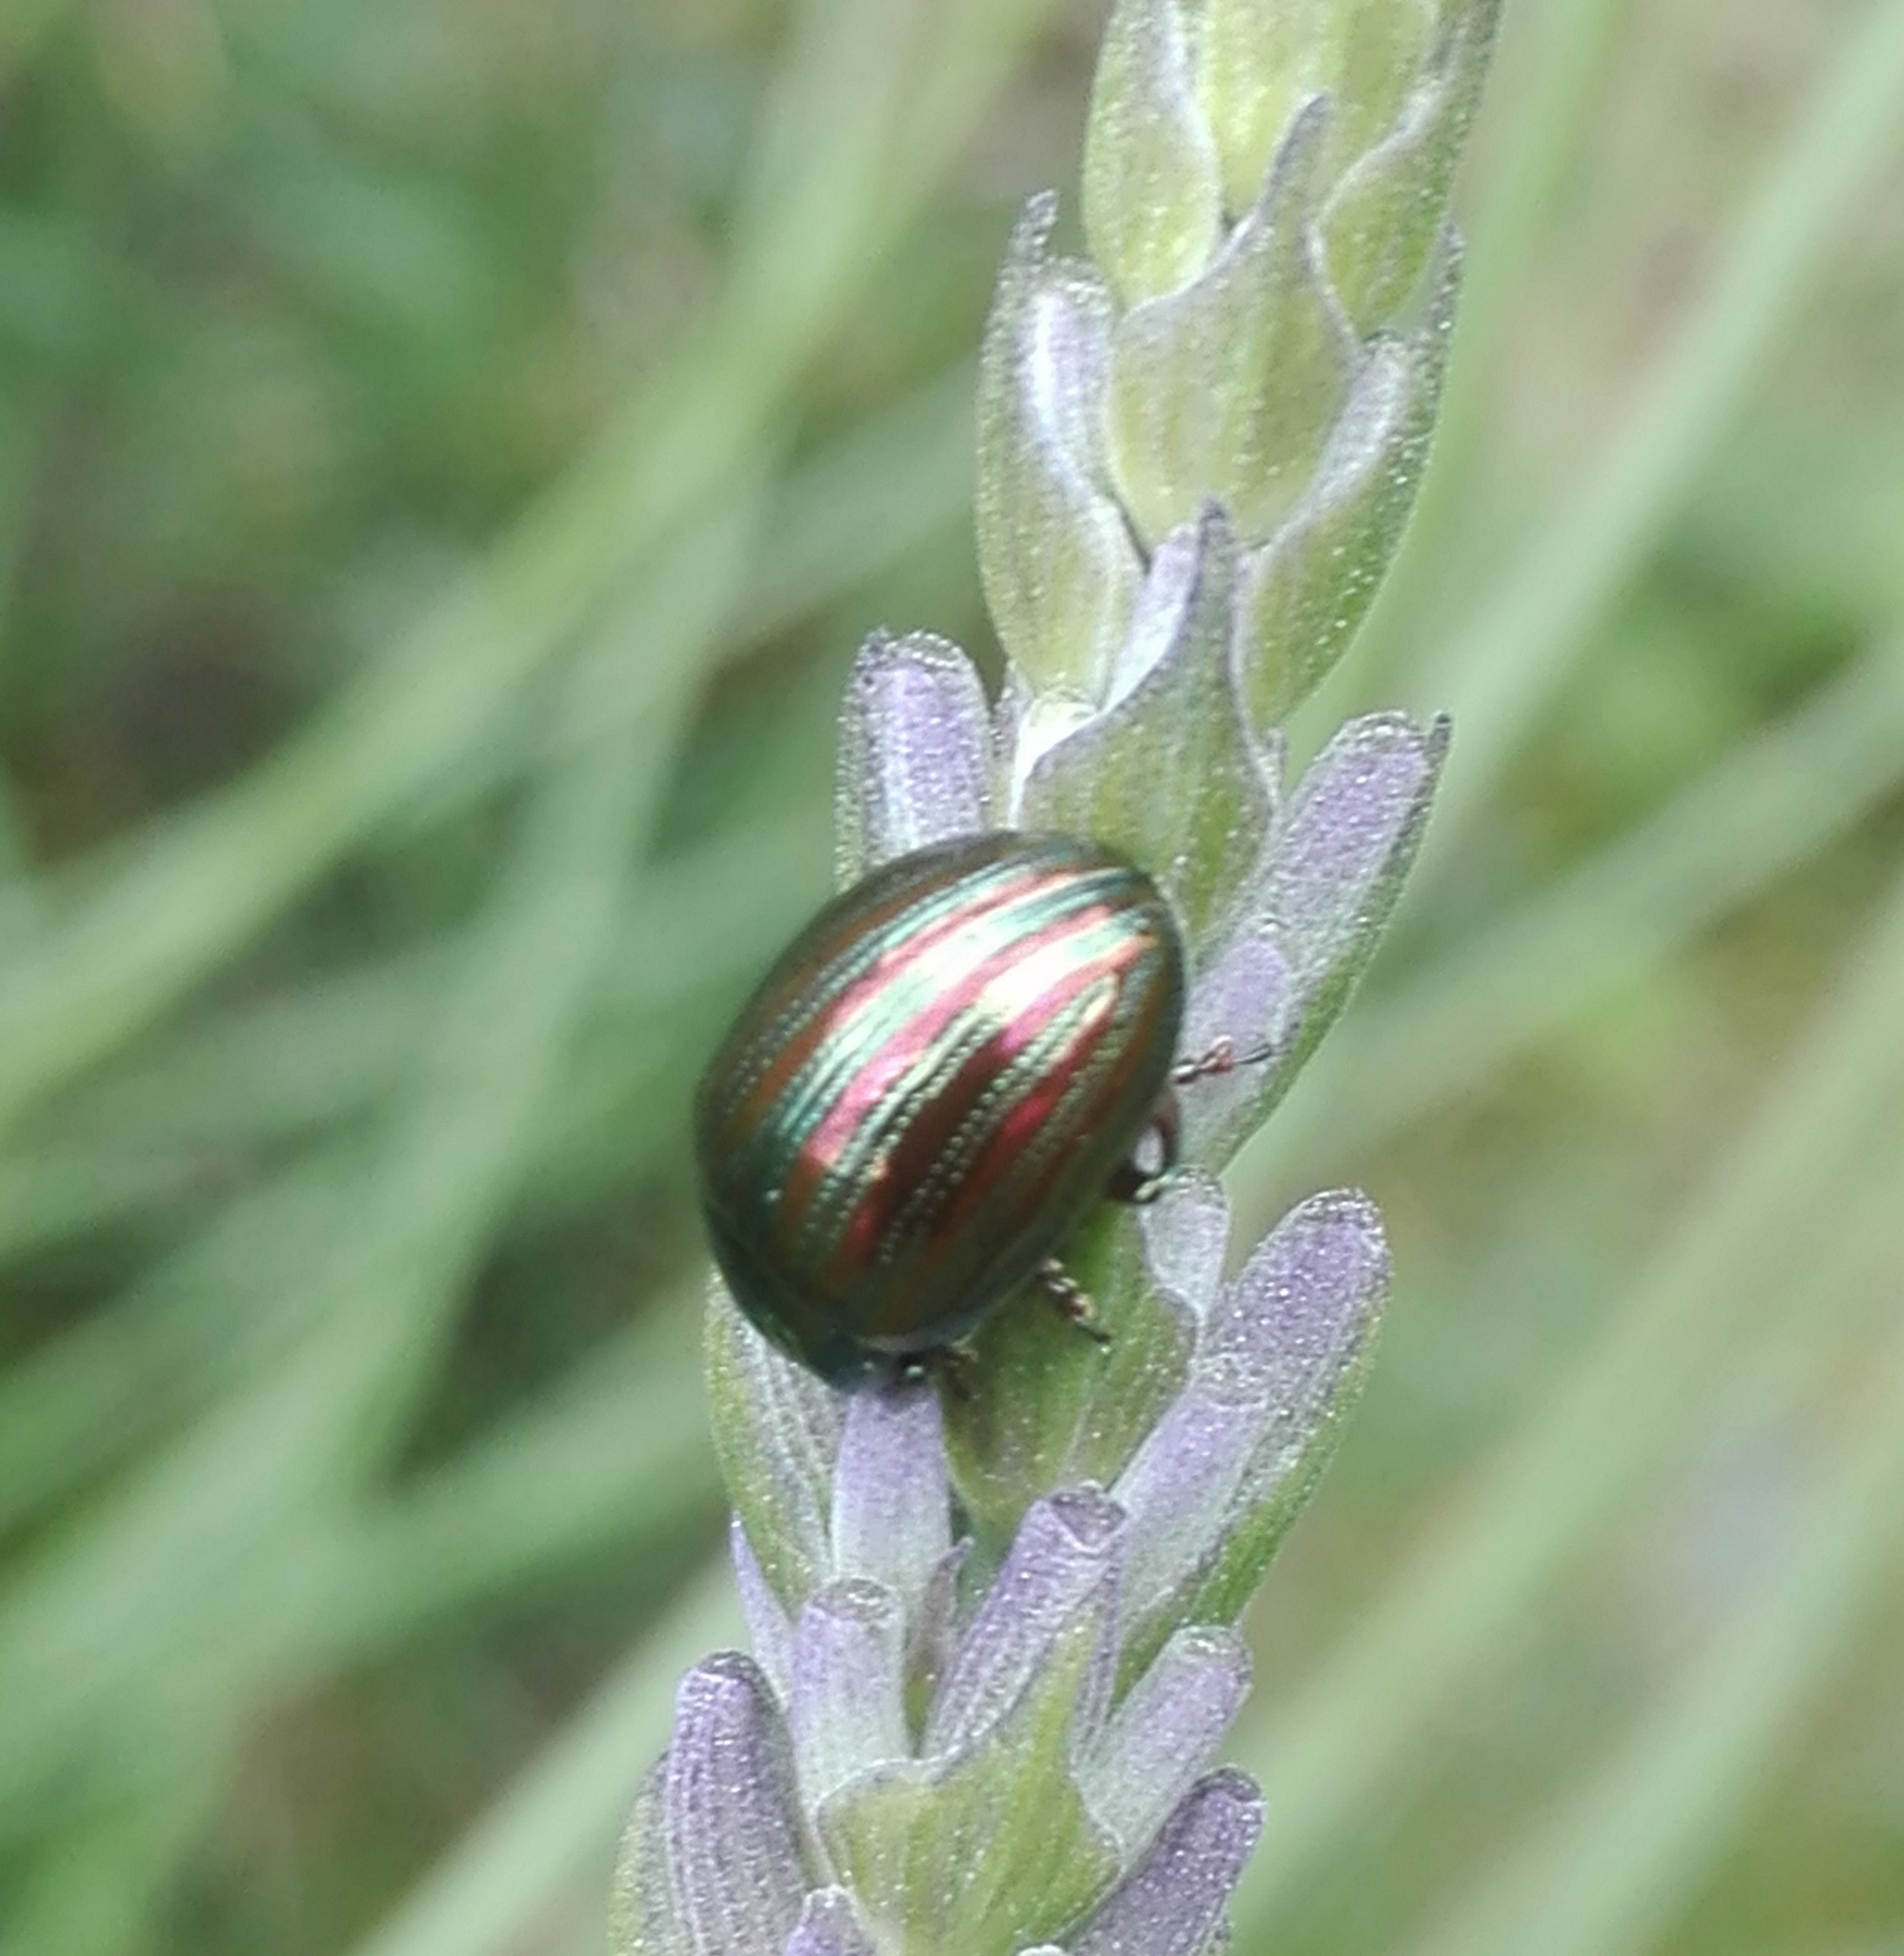 #509 Rosemary Beetle (Chrysolina americana)